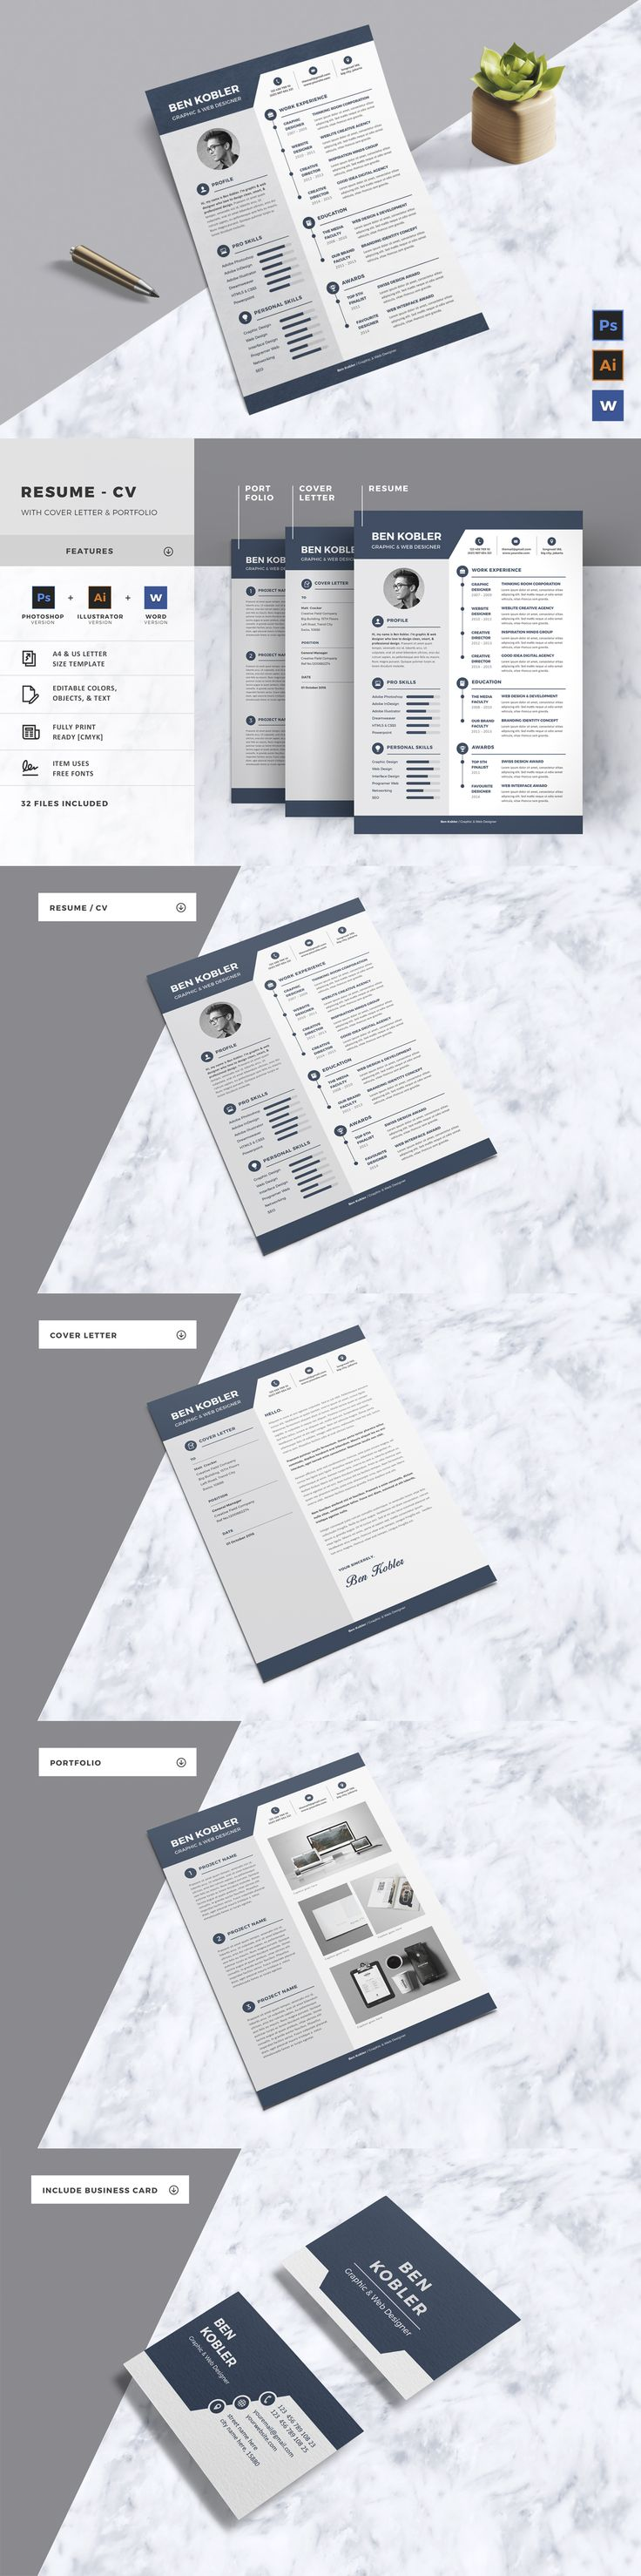 Resume CV is a professional clean